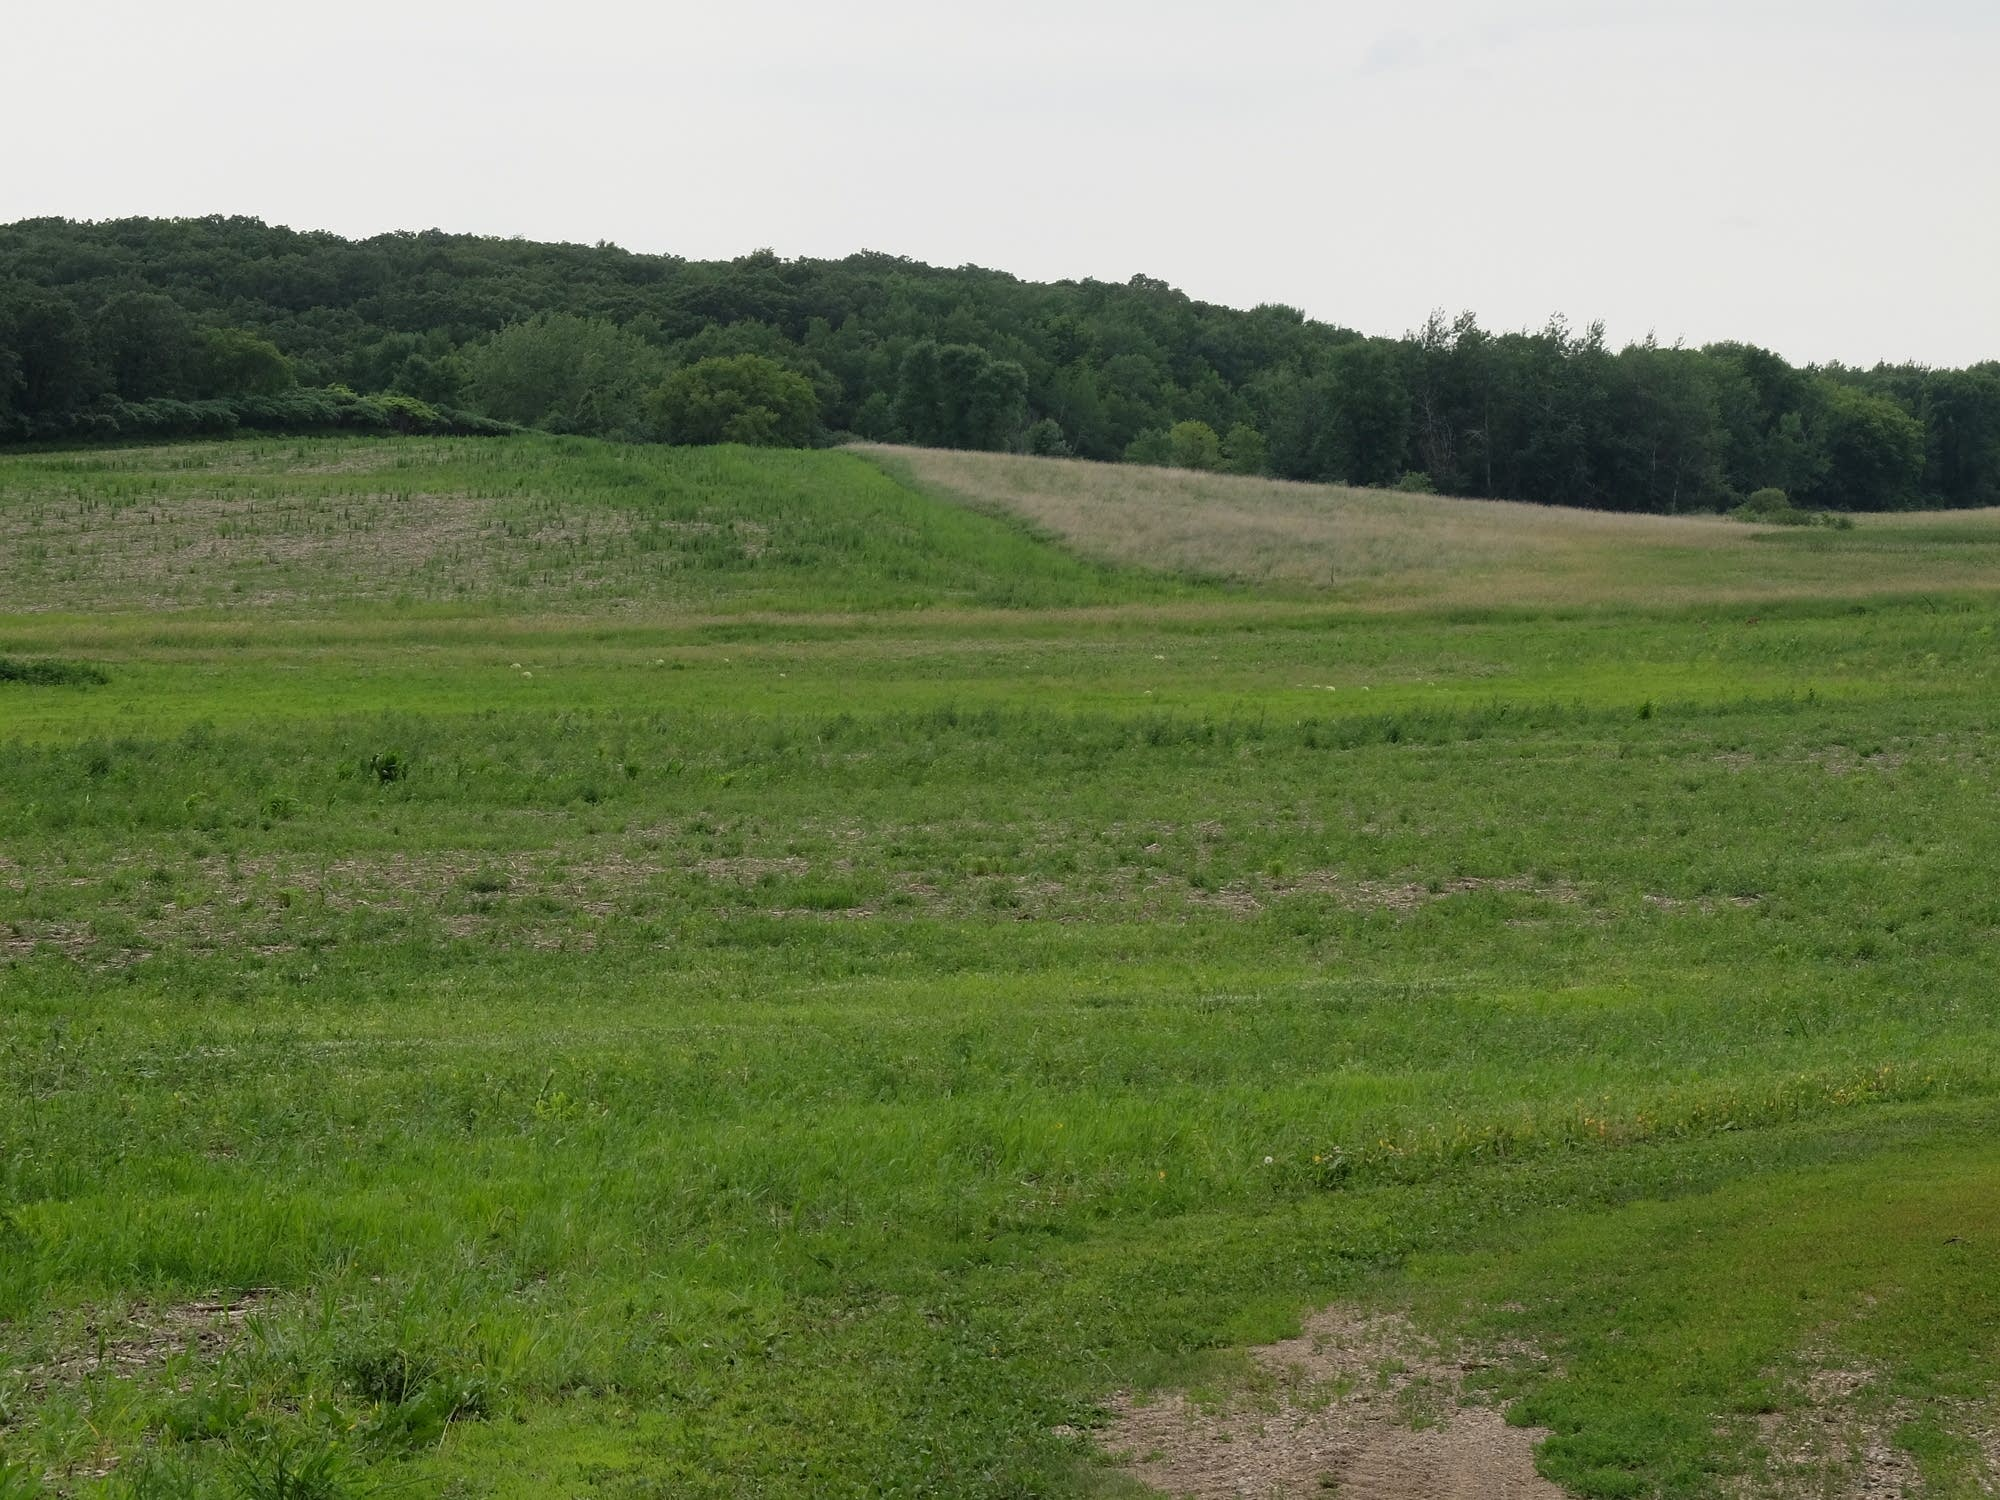 The lower part of this field in Otter Tail county was once a wetland.